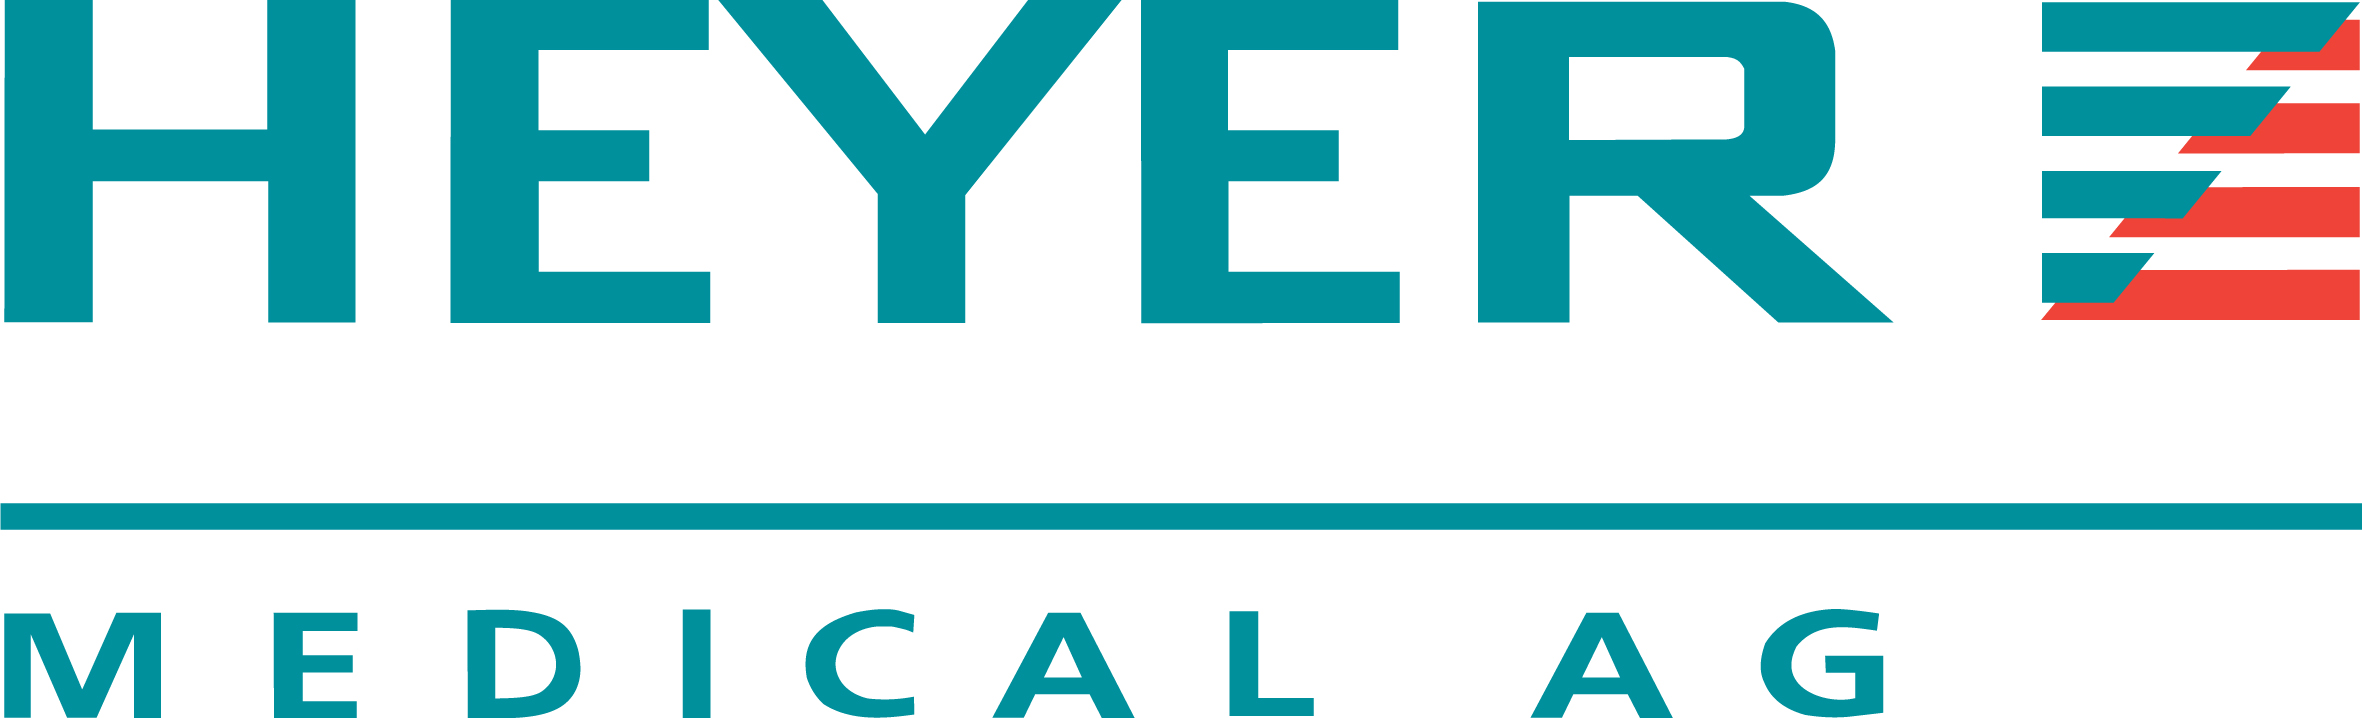 HEYER Medical AG